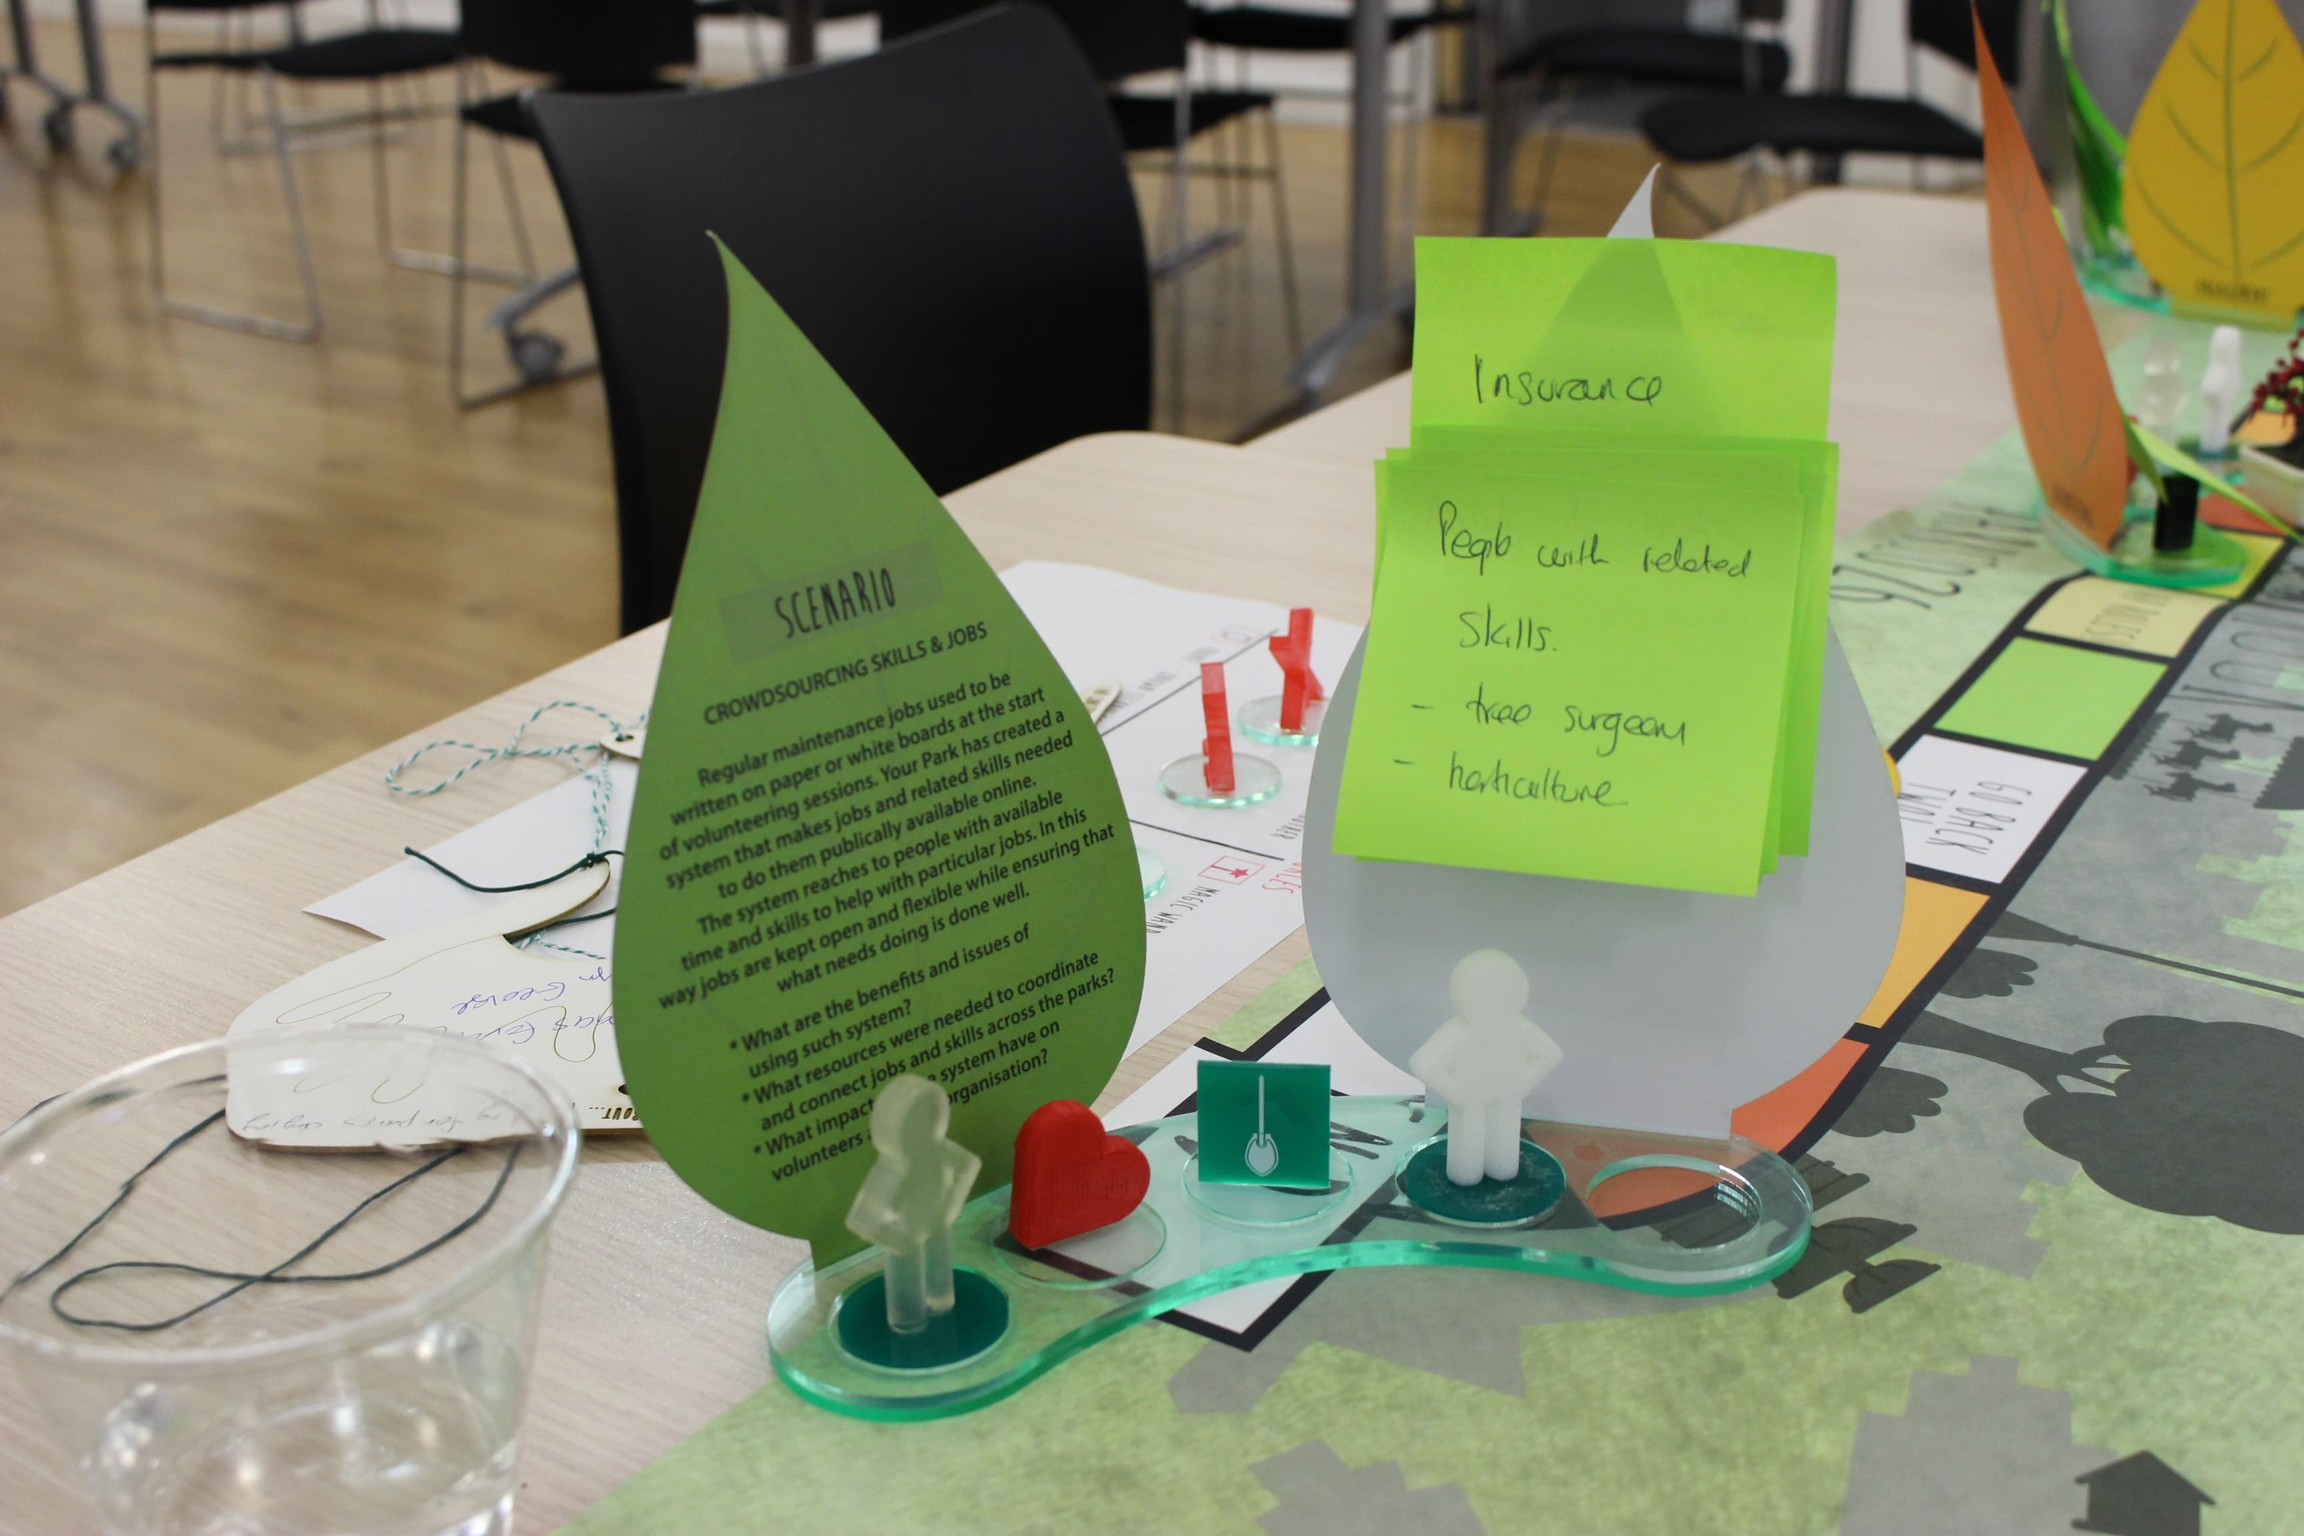 The workshops used a bespoke board game style process so people could share ideas about the future of the parks